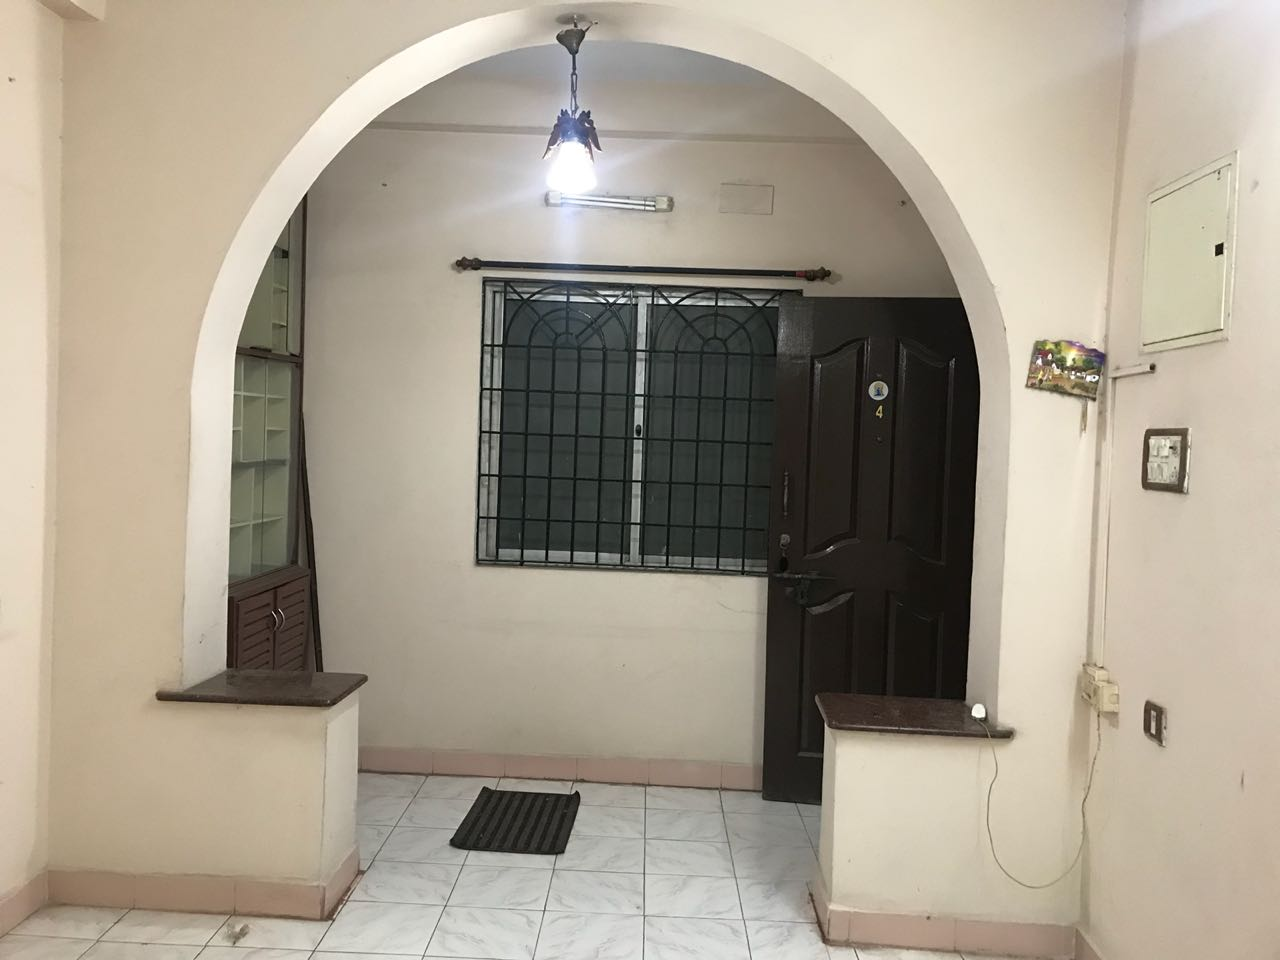 2BHK-1050sqft-flat-for-rent-in-WestMambalam-Chennai-TP21454163